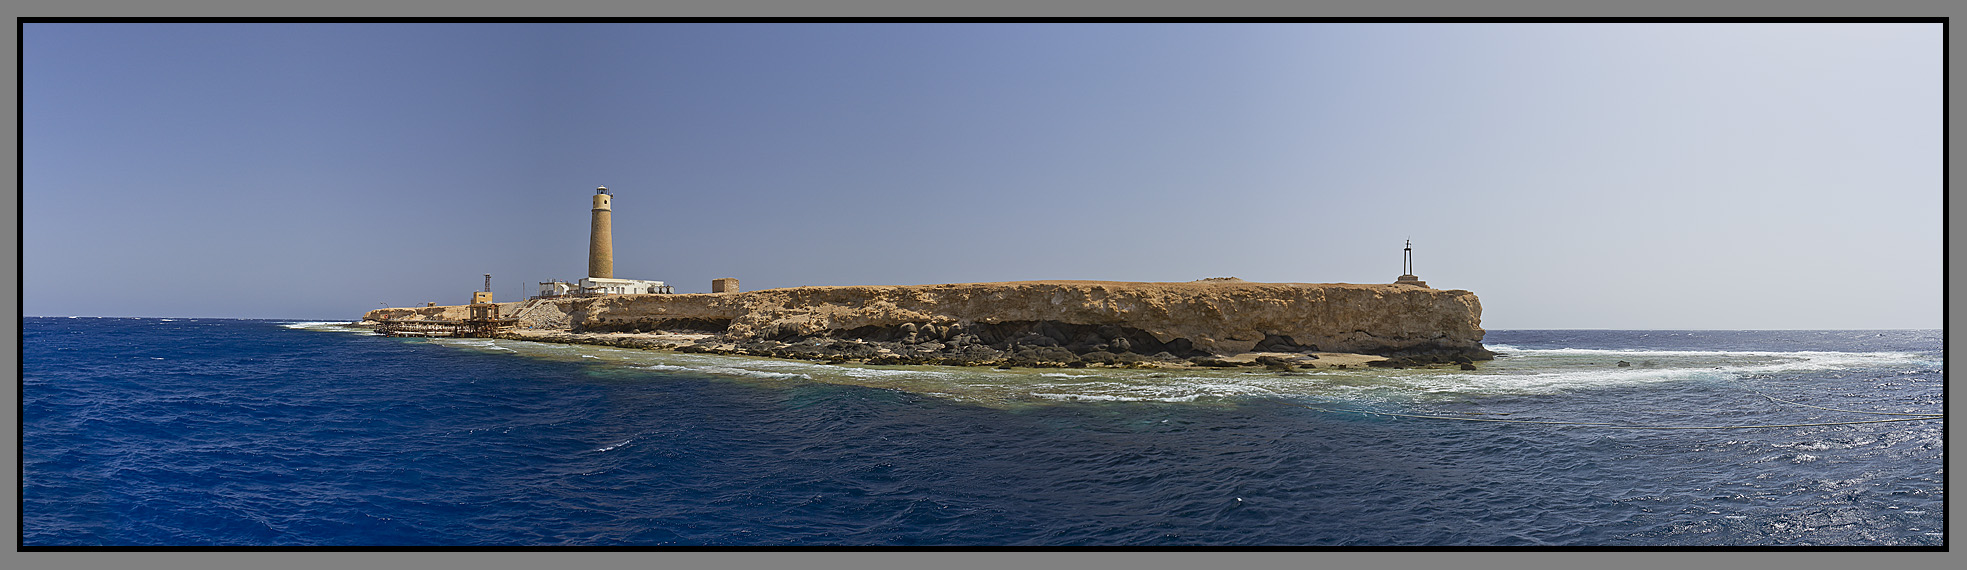 Egypt, Red Sea, Brothers islands - Big Brother